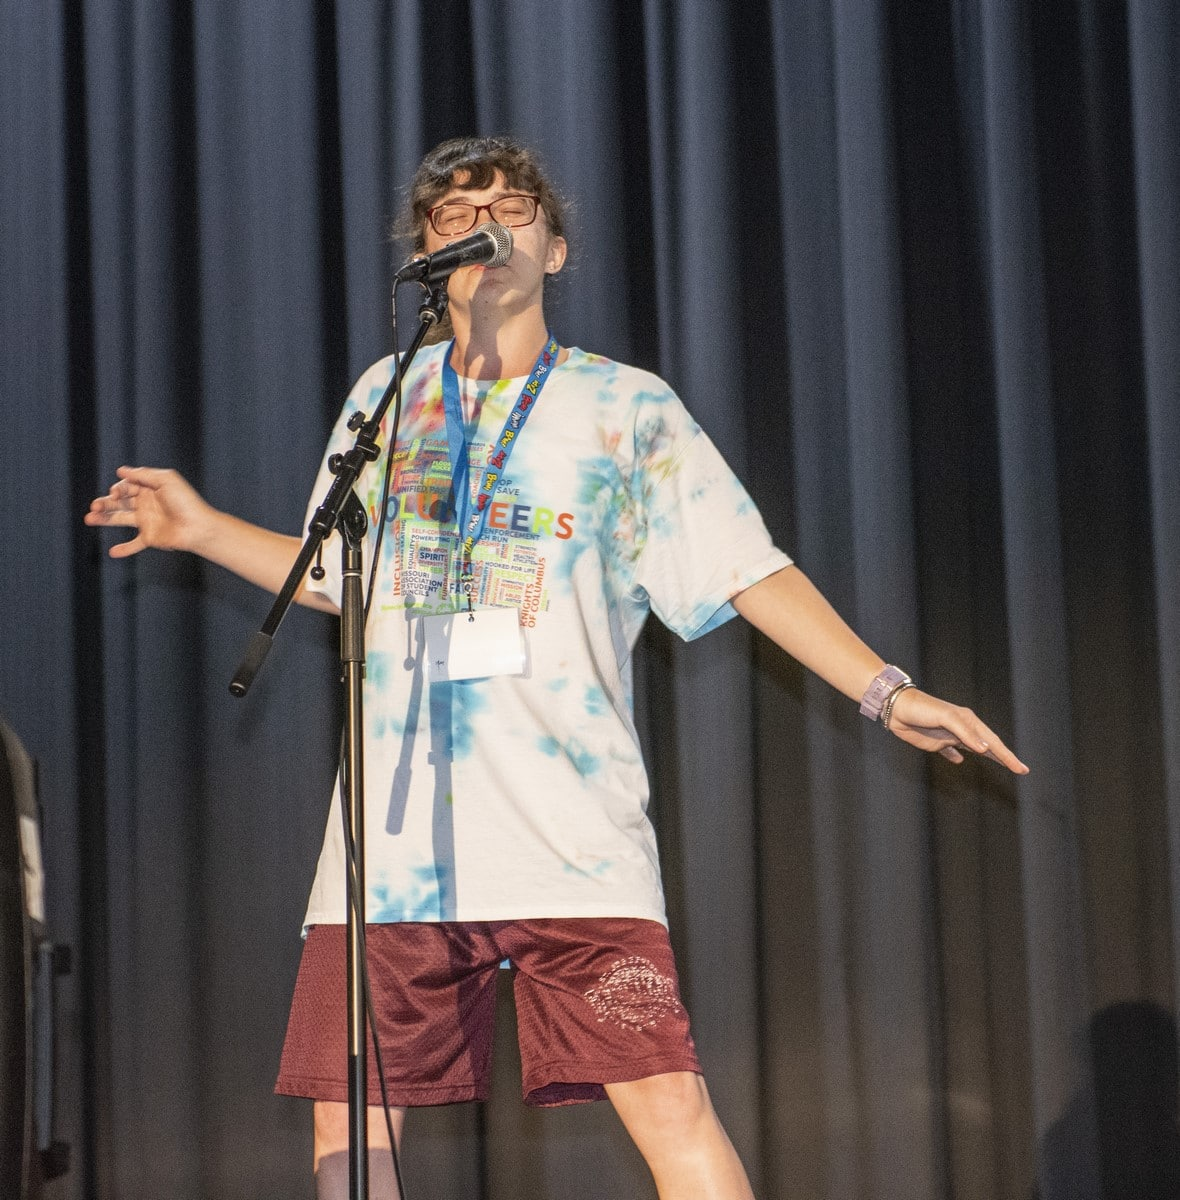 An athlete sings on a stage during a talent show